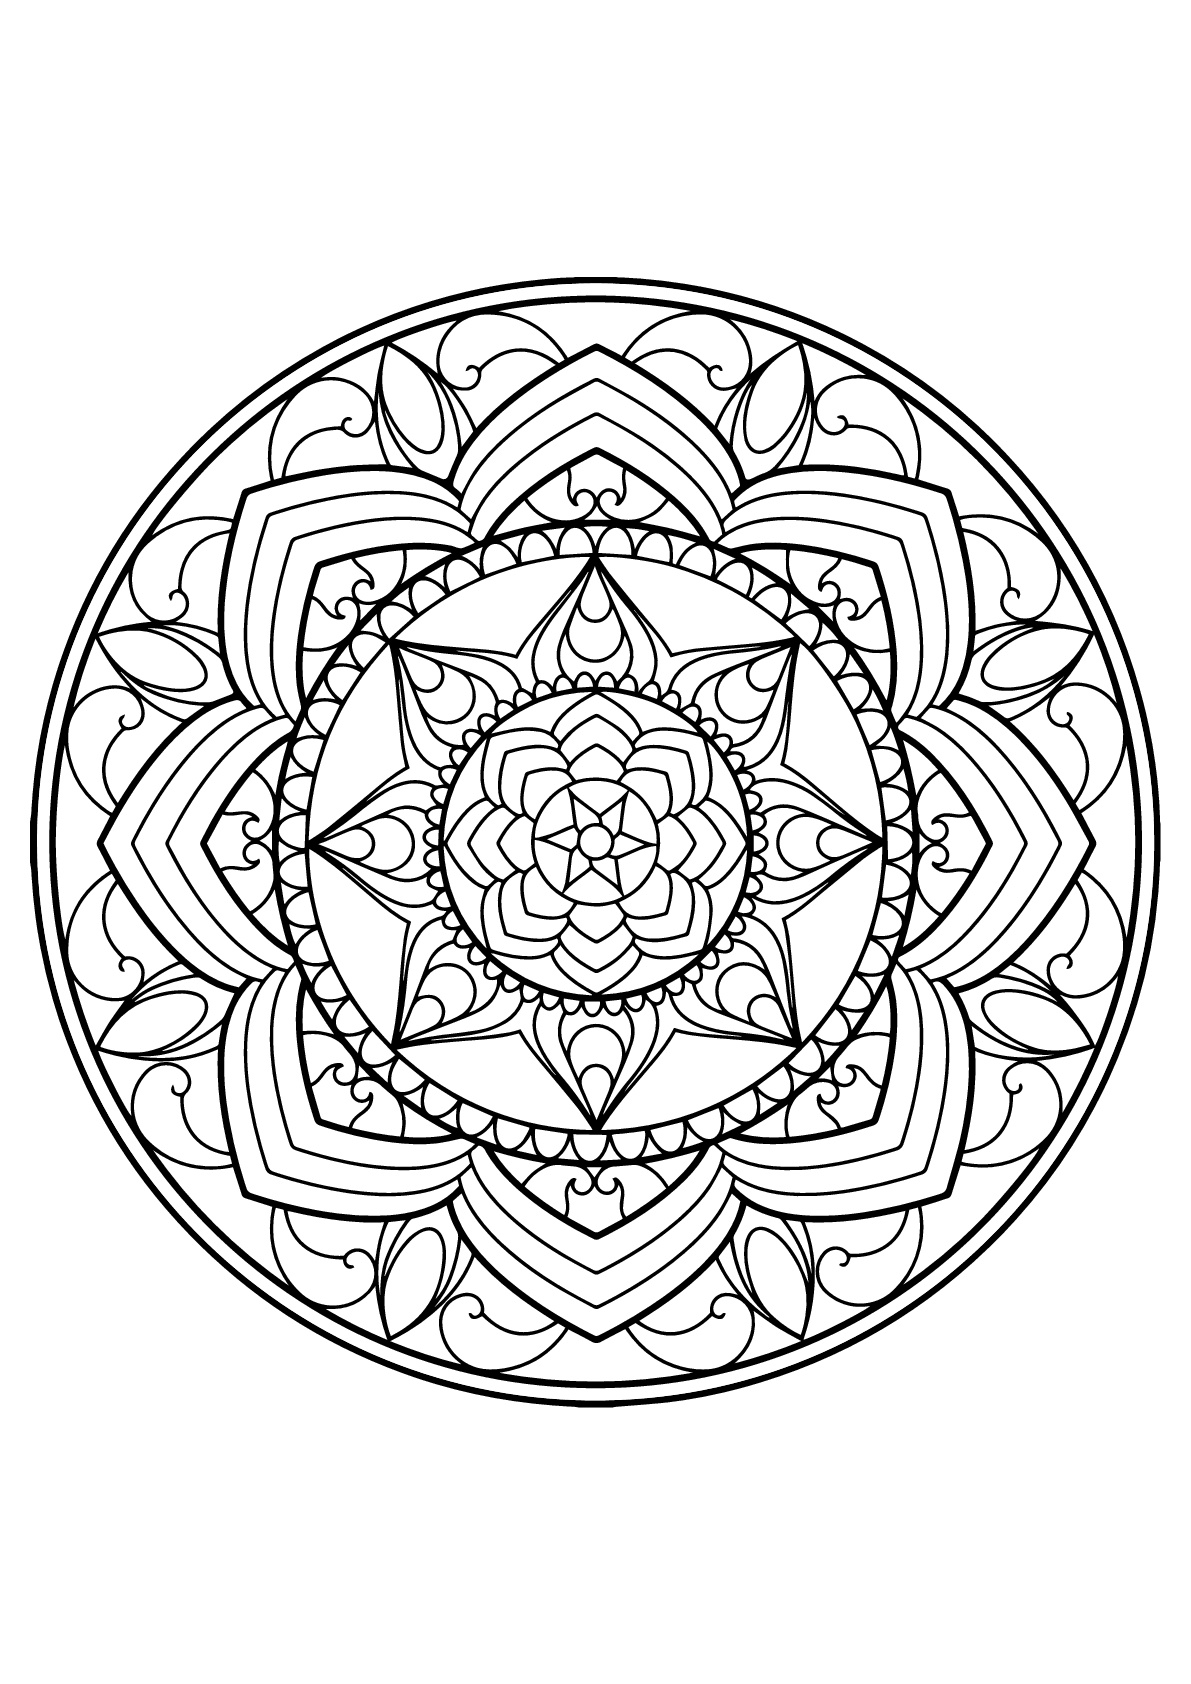 mandala pages mandalas to color for kids mandalas kids coloring pages mandala pages